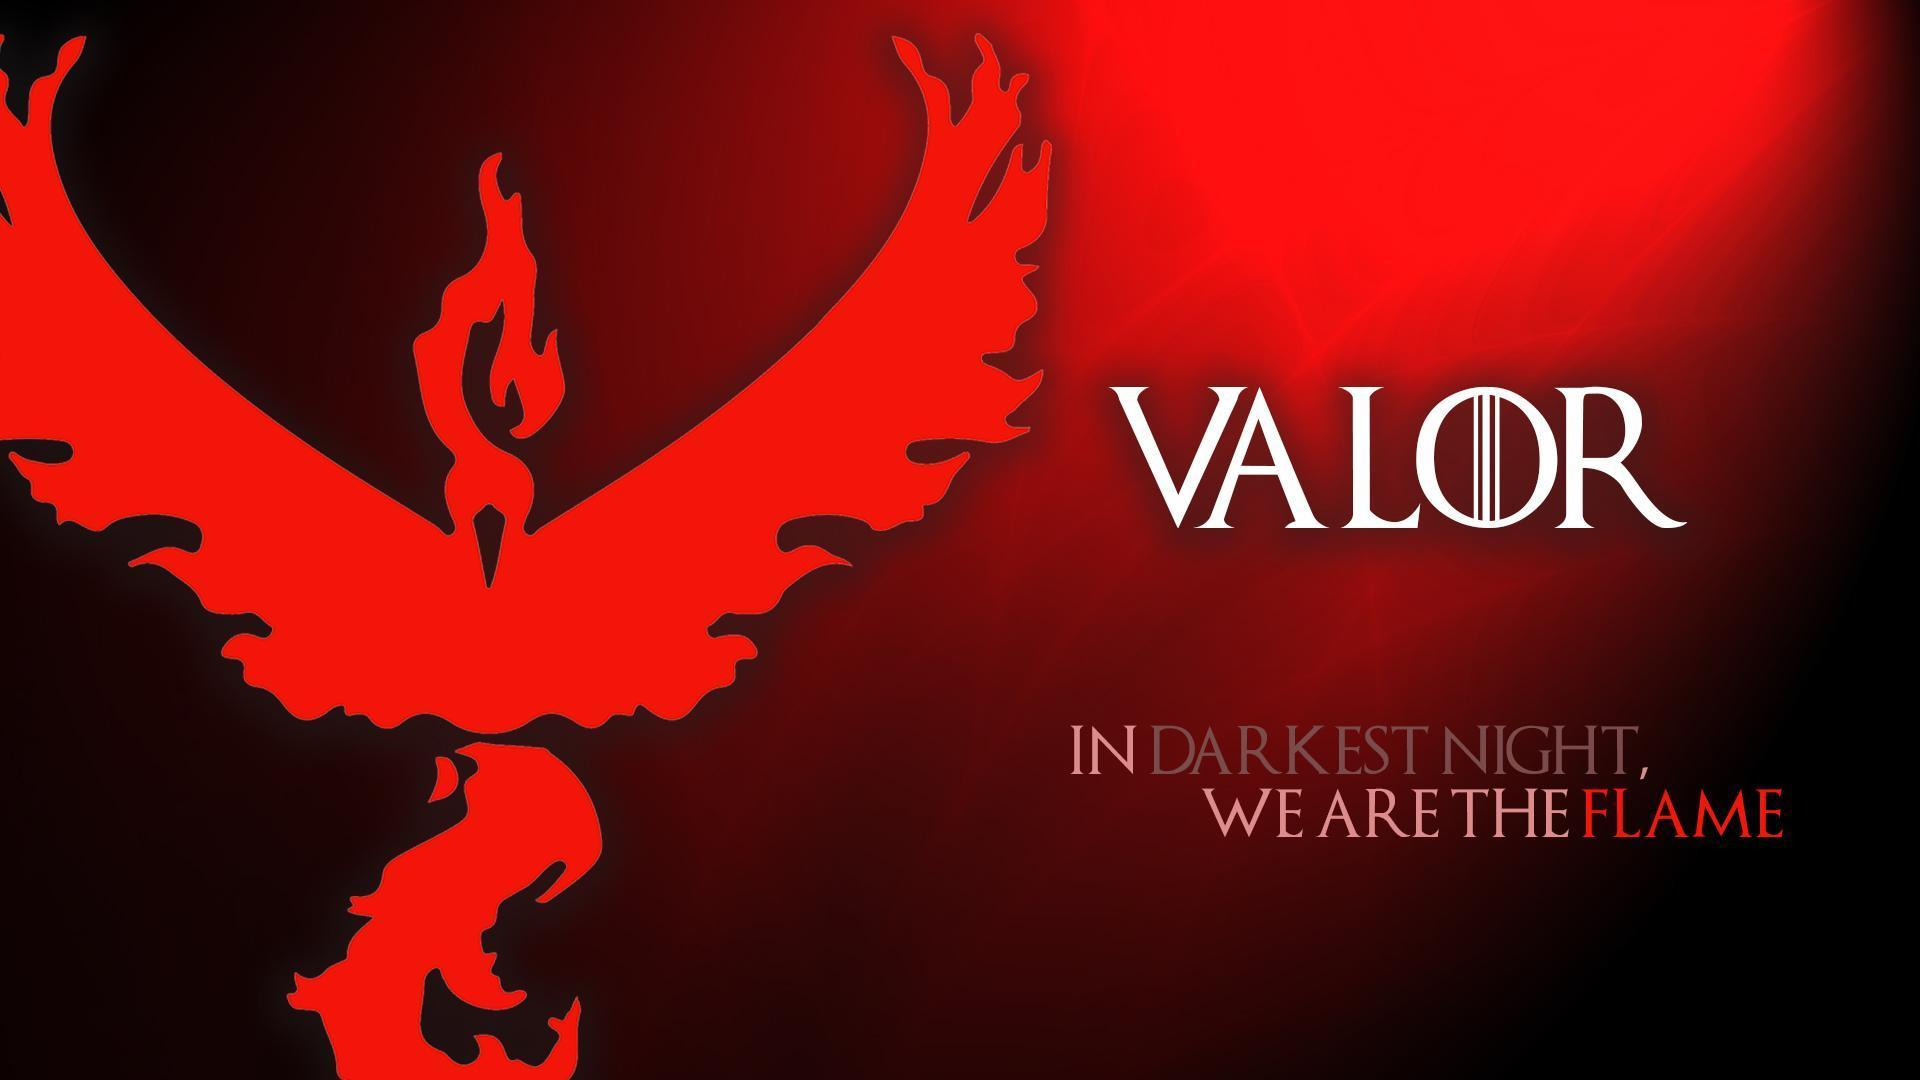 team valor wallpaper